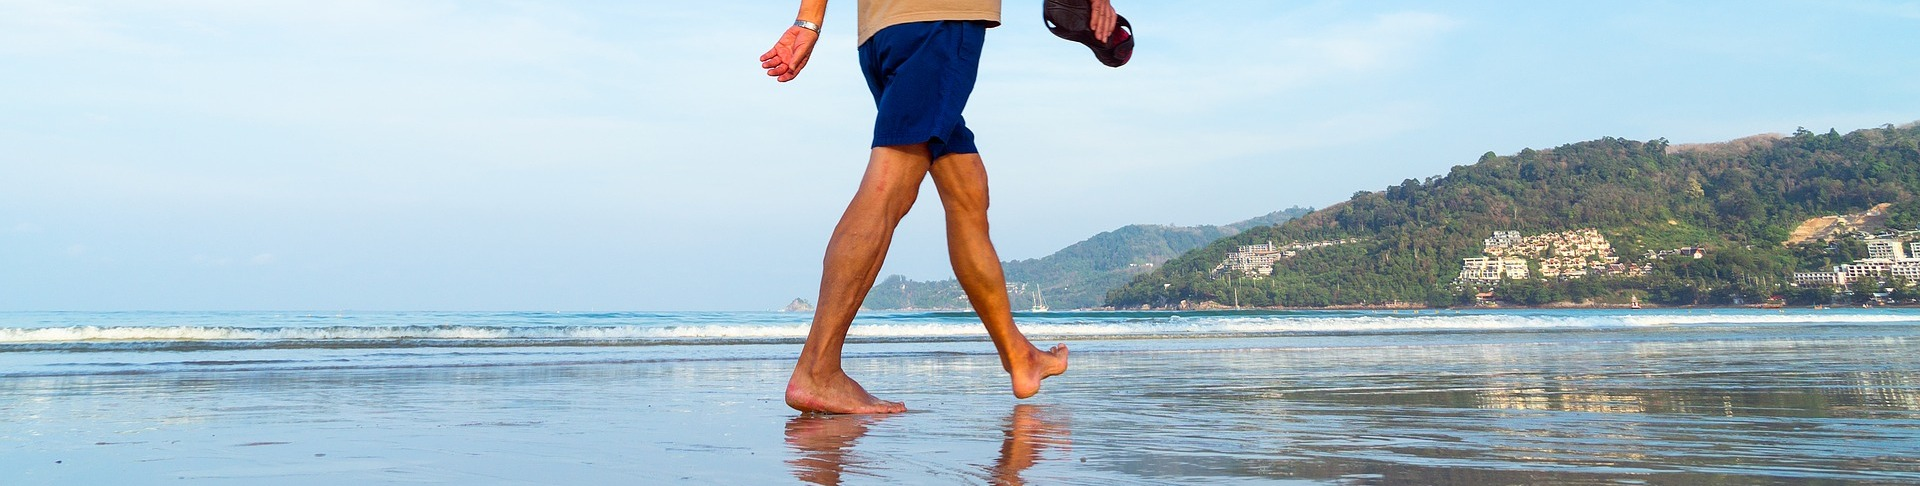 Man walking on beach. BioSuperfood promotes healthy aging and longevity